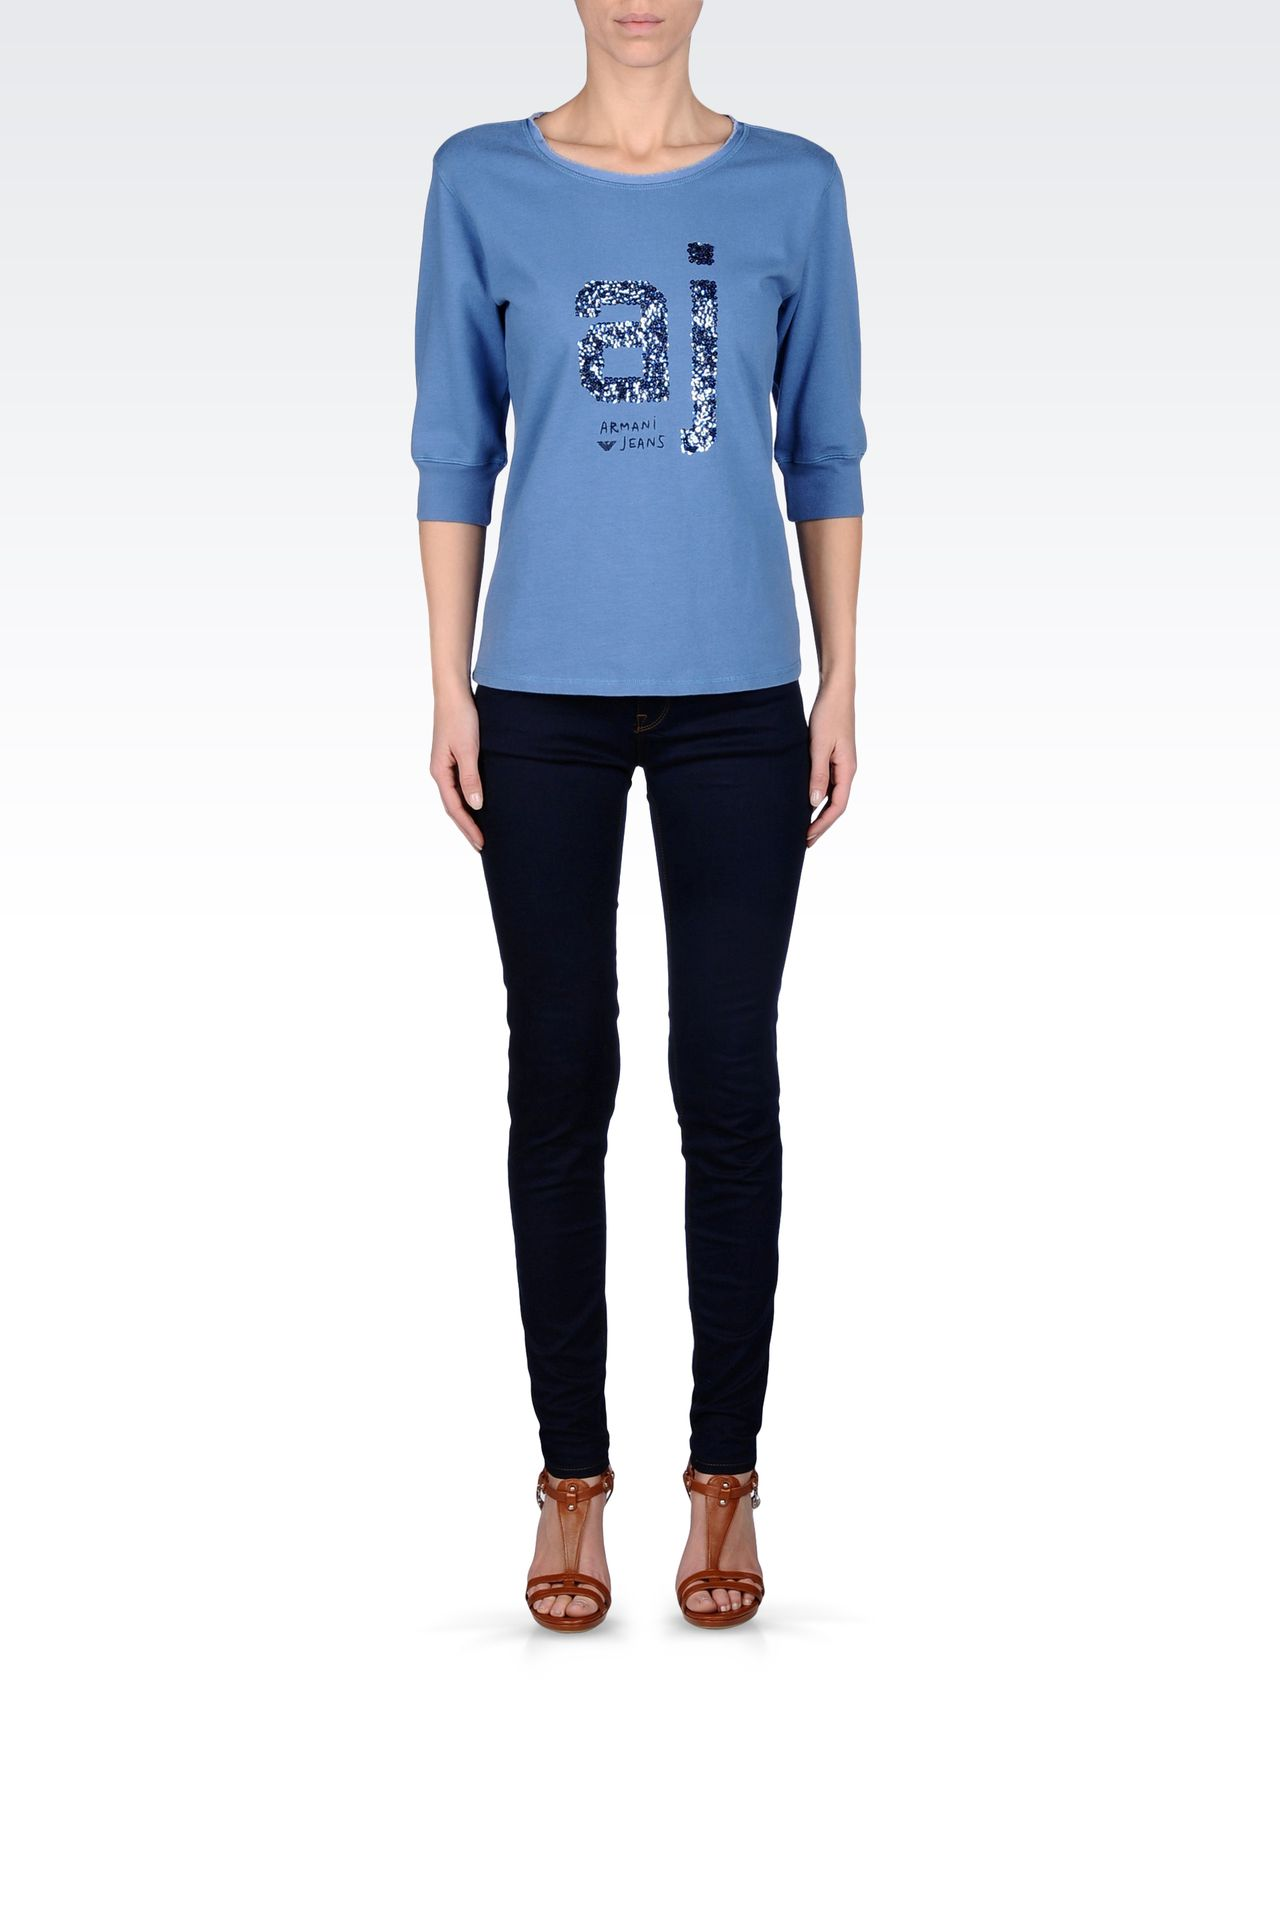 COTTON T-SHIRT WITH SEQUINED LOGO: Sweatshirts Women by Armani - 0